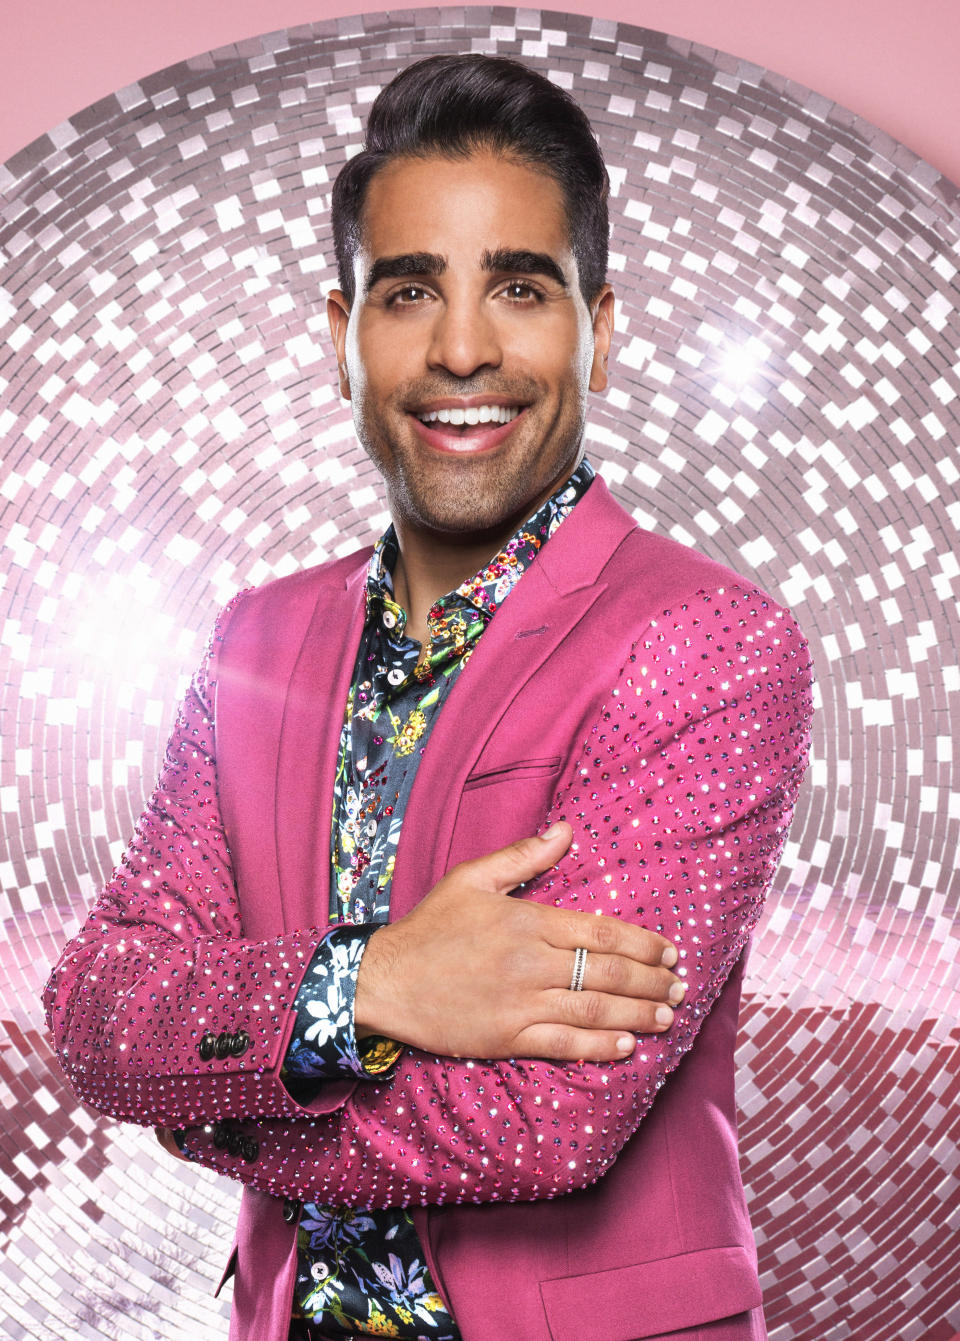 """<p>CBBC presenter and This Morning's resident doctor told us he's got some advice from Ruth Langsford, who competed in Strictly just last year. """"Ruth gave me her number and said 'Just call me anytime, if you're going through anything or you're nervous, just give me a ring.' And that is Ruth through and through,"""" he said. (BBC Pictures) </p>"""